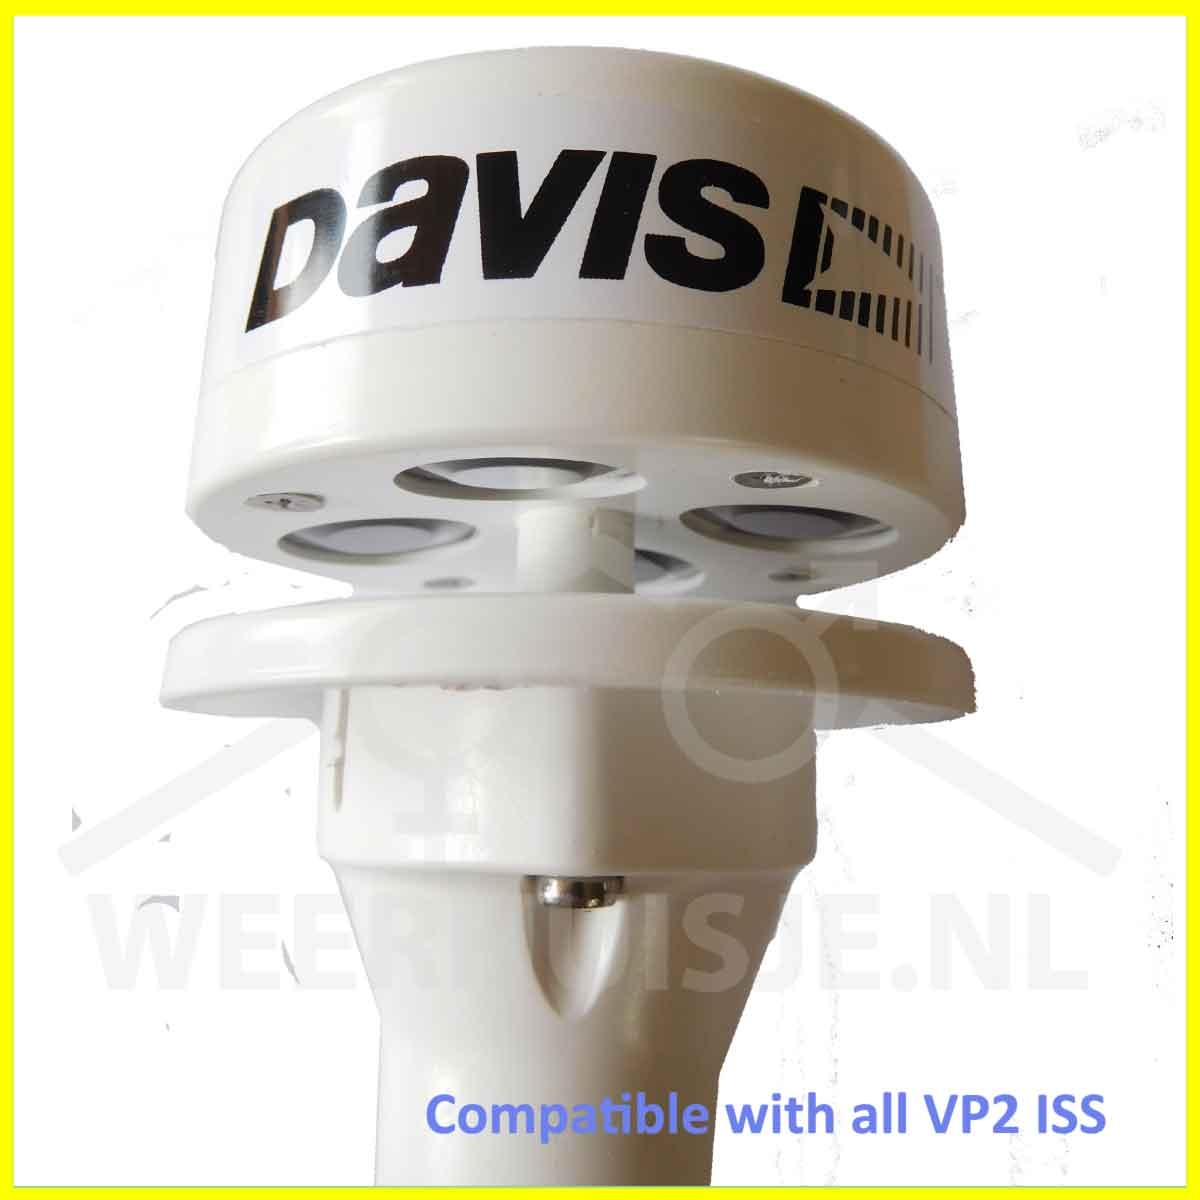 Davis 6415  | VP option | Ultrasone anemometer Vantage Pro2